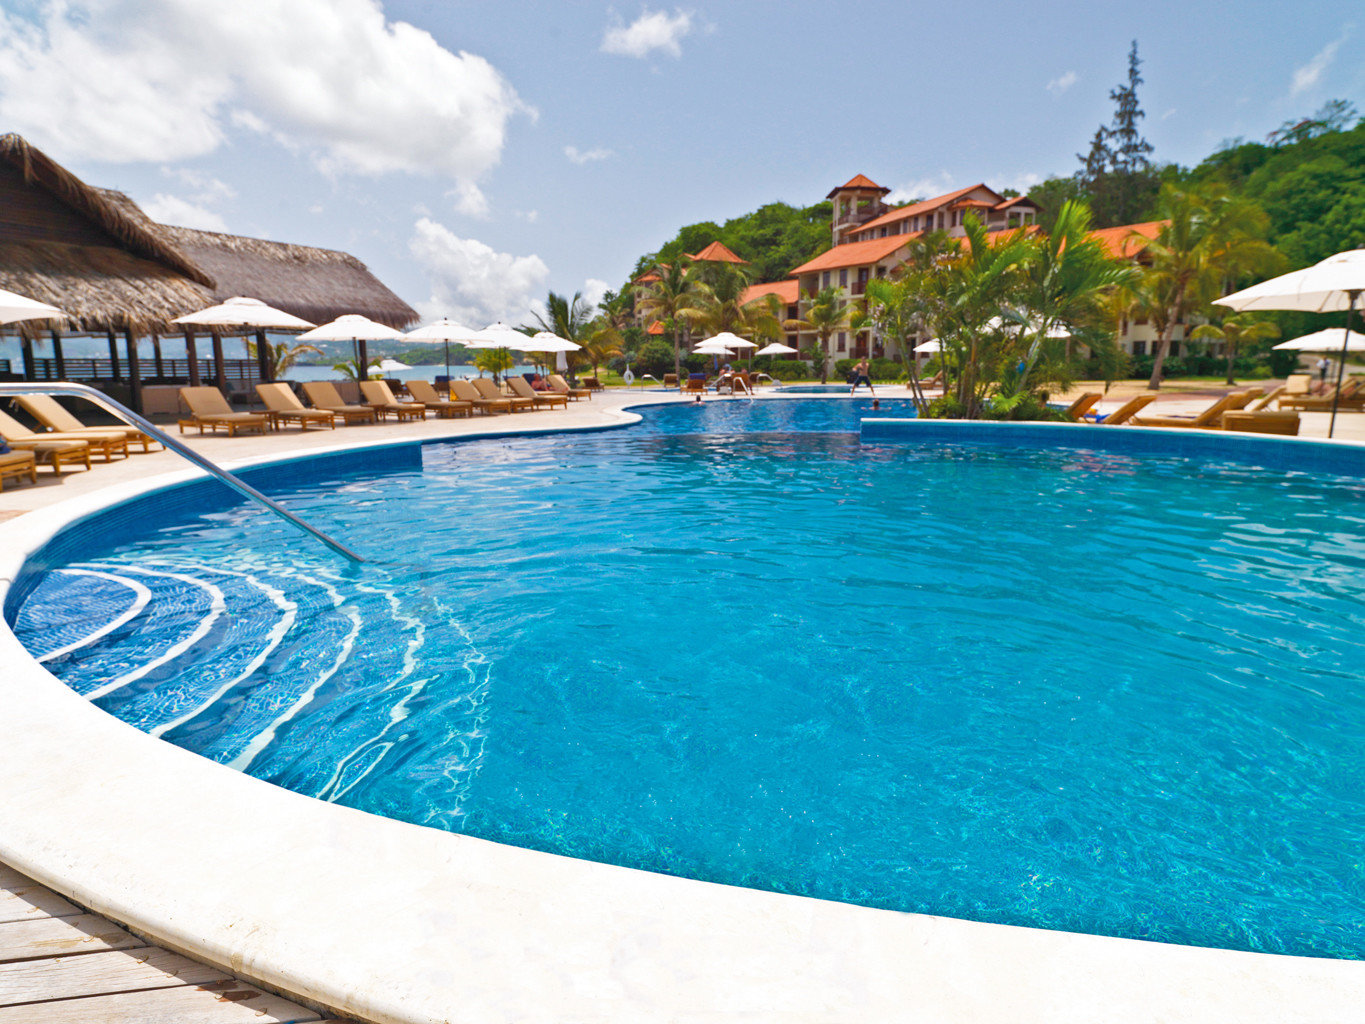 Adult-only Deck Island Pool Scenic views Waterfront sky water swimming pool property leisure Resort caribbean resort town Lagoon Sea swimming day